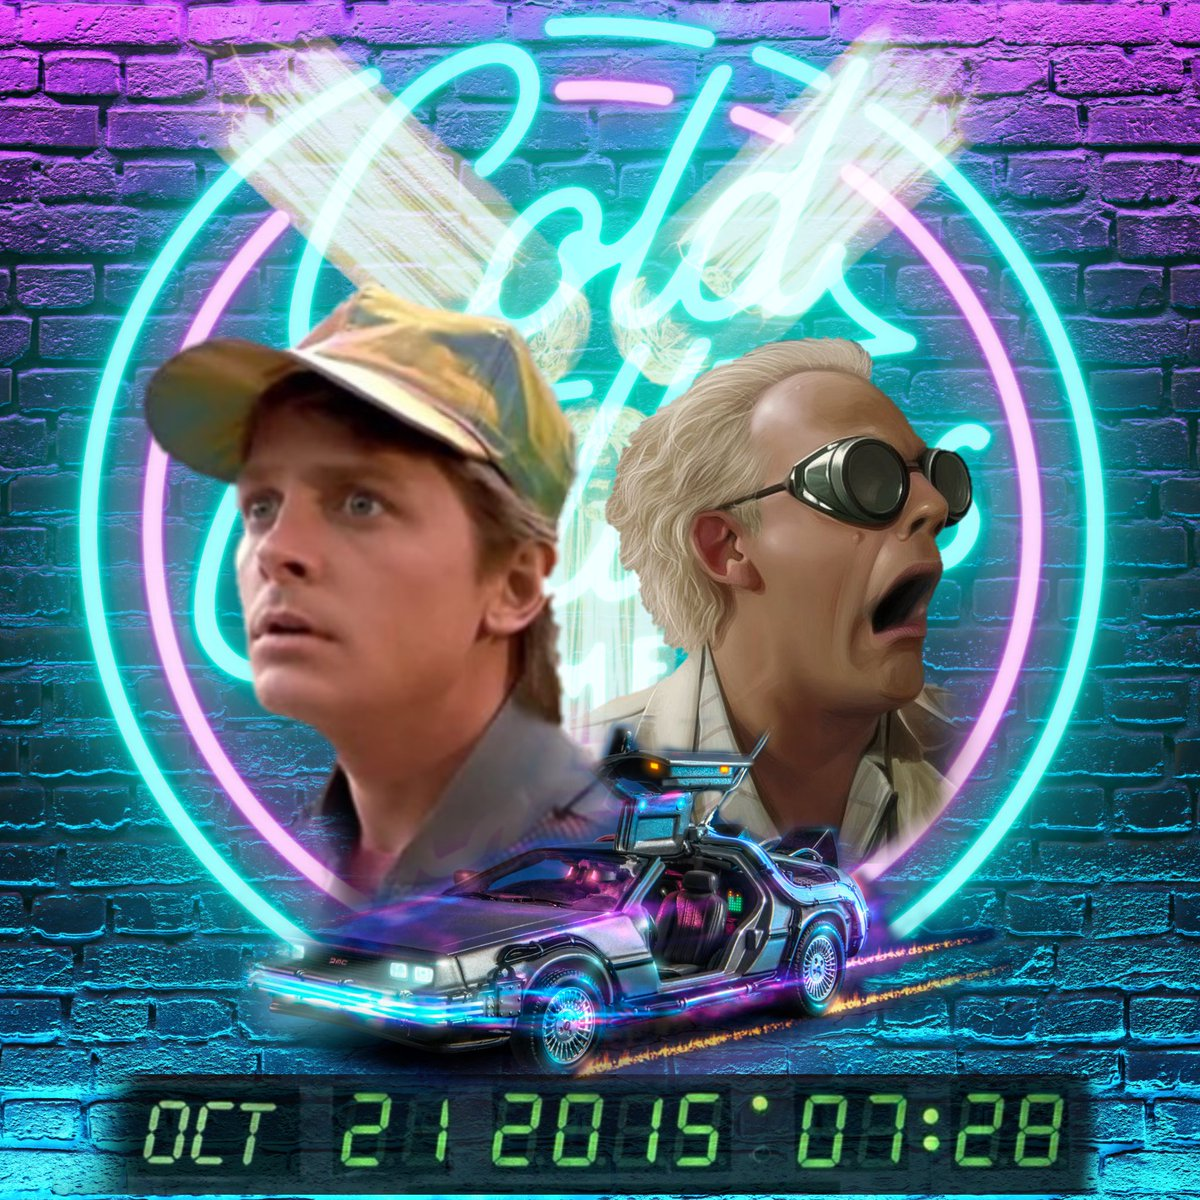 It's Back To The Future Day! Exactly 5 years since Doc & Marty visited 2015.  Still wondering where the flying cars and hoverboards are at.  #BackToTheFutureDay #podcast #comedypodcast #comedy #podernfamily #britpodscene #podnation #backtothefuture #doc #martymcfly #PodcastHQ https://t.co/bi8dmLYG8I